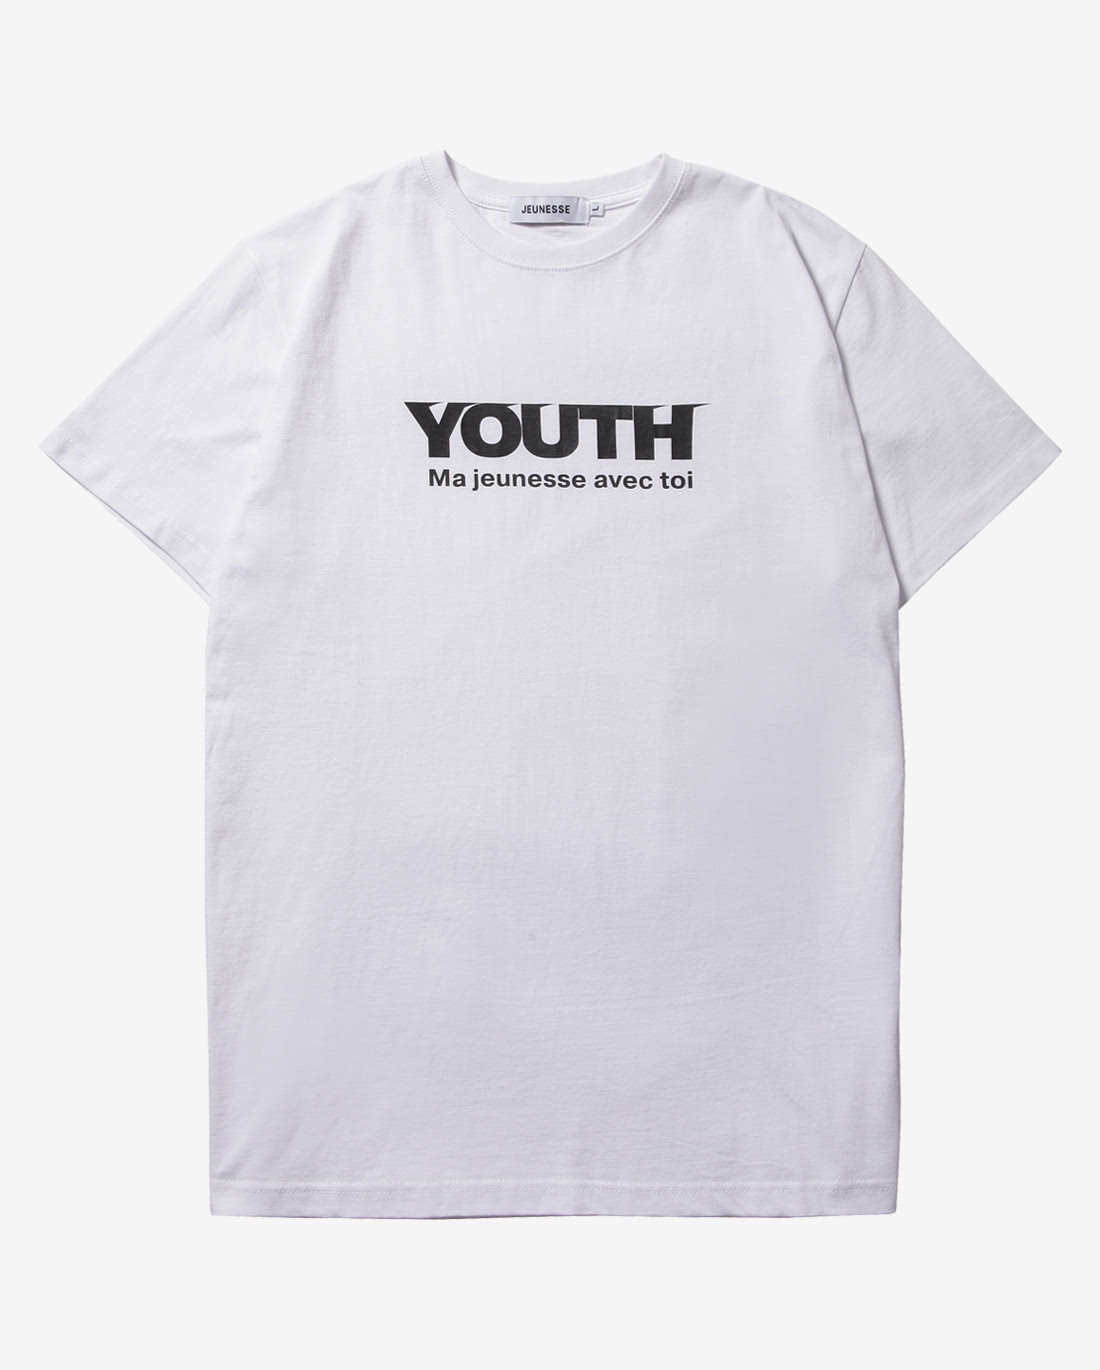 Youth S/S Tee White(Black Logo)